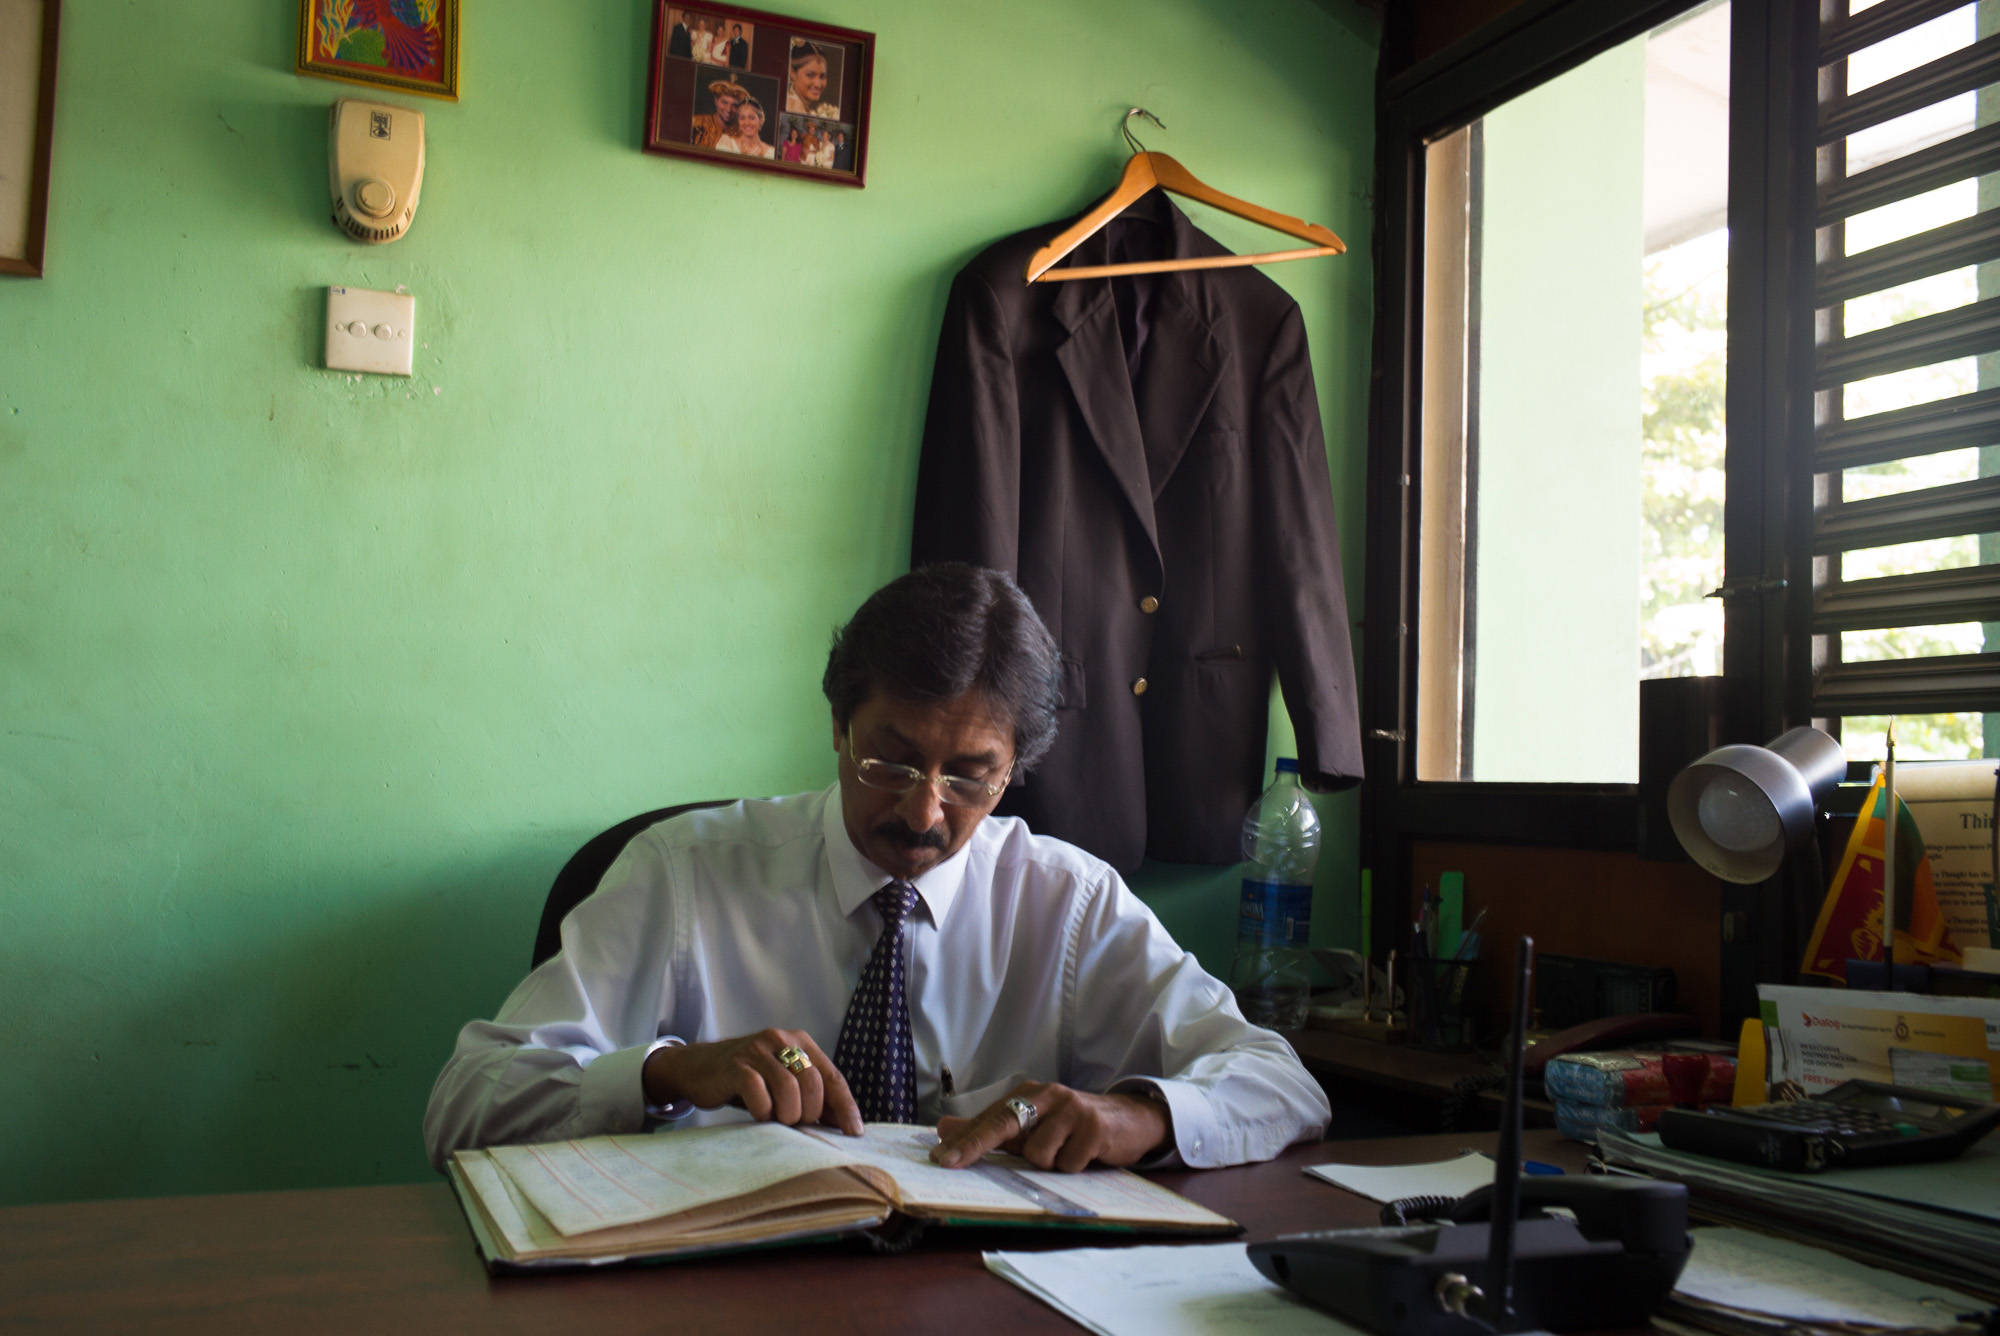 Lawyer's office, Kurunegala, North Western Province